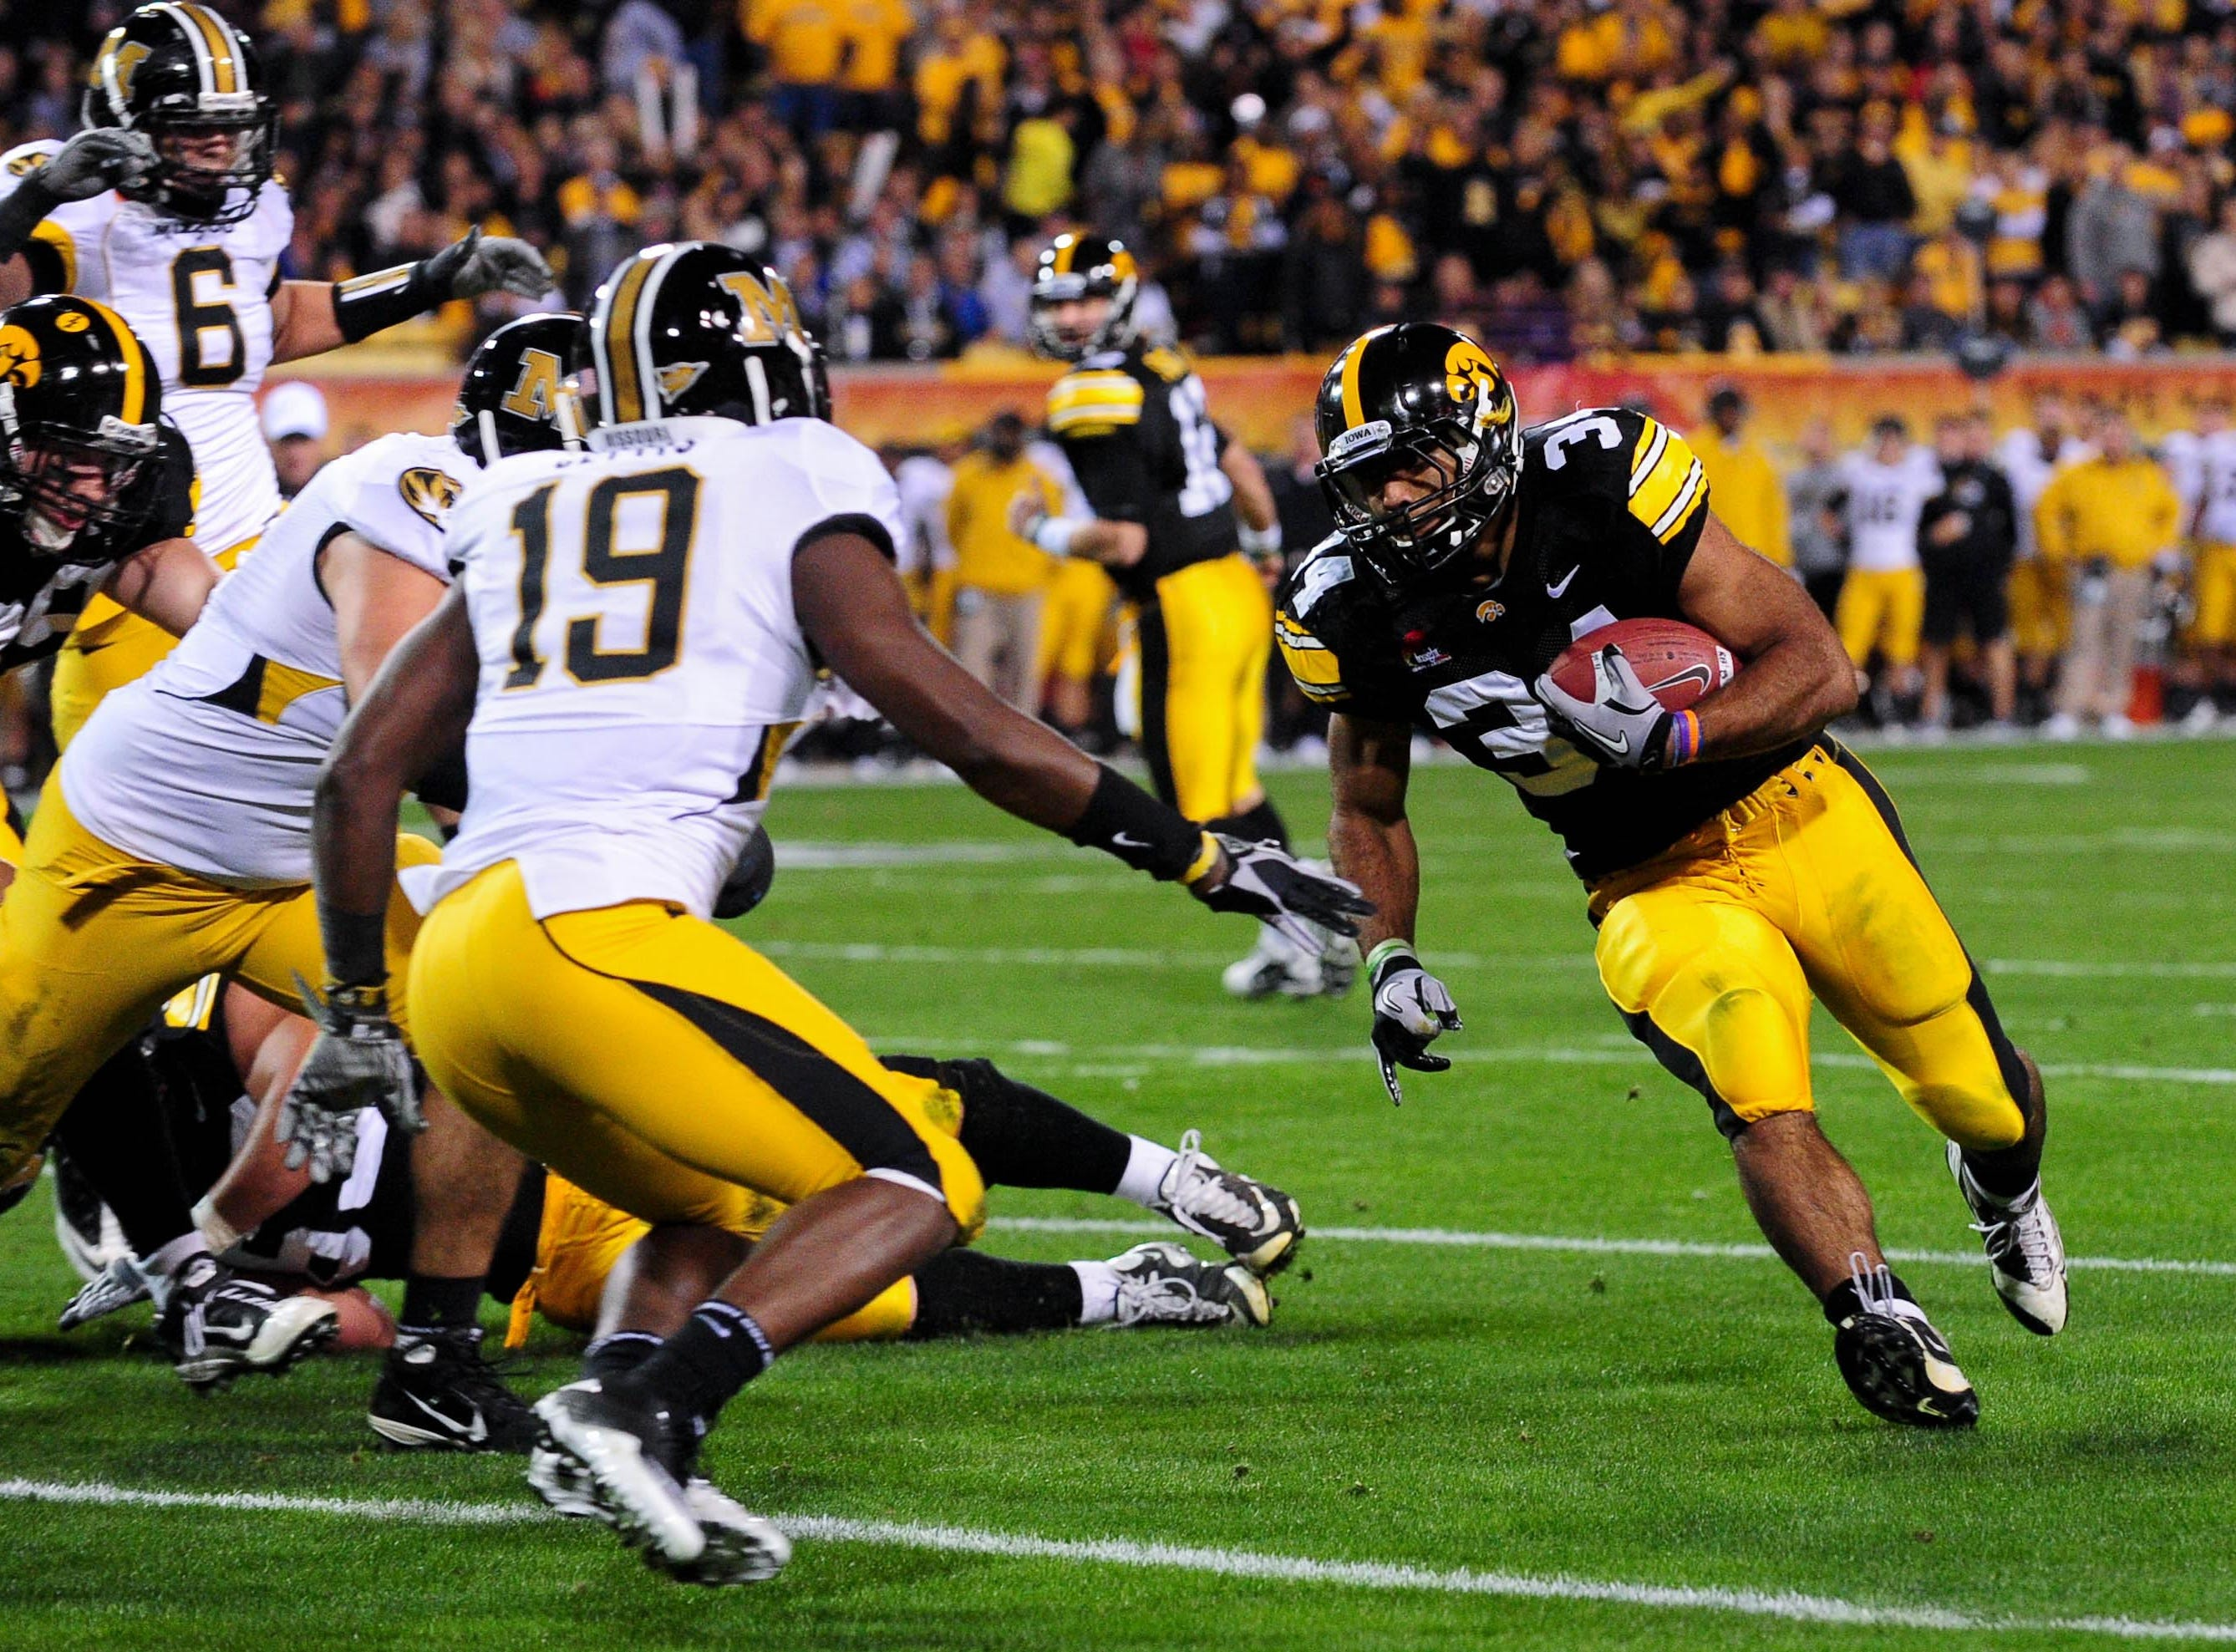 Dec. 28, 2010; Tempe, AZ, USA; Iowa Hawkeyes running back Marcus Coker runs during the second quarter against the Missouri Tigers during the 2010 Insight Bowl at Sun Devil Stadium. Mandatory Credit: Matt Kartozian-USA TODAY Sports